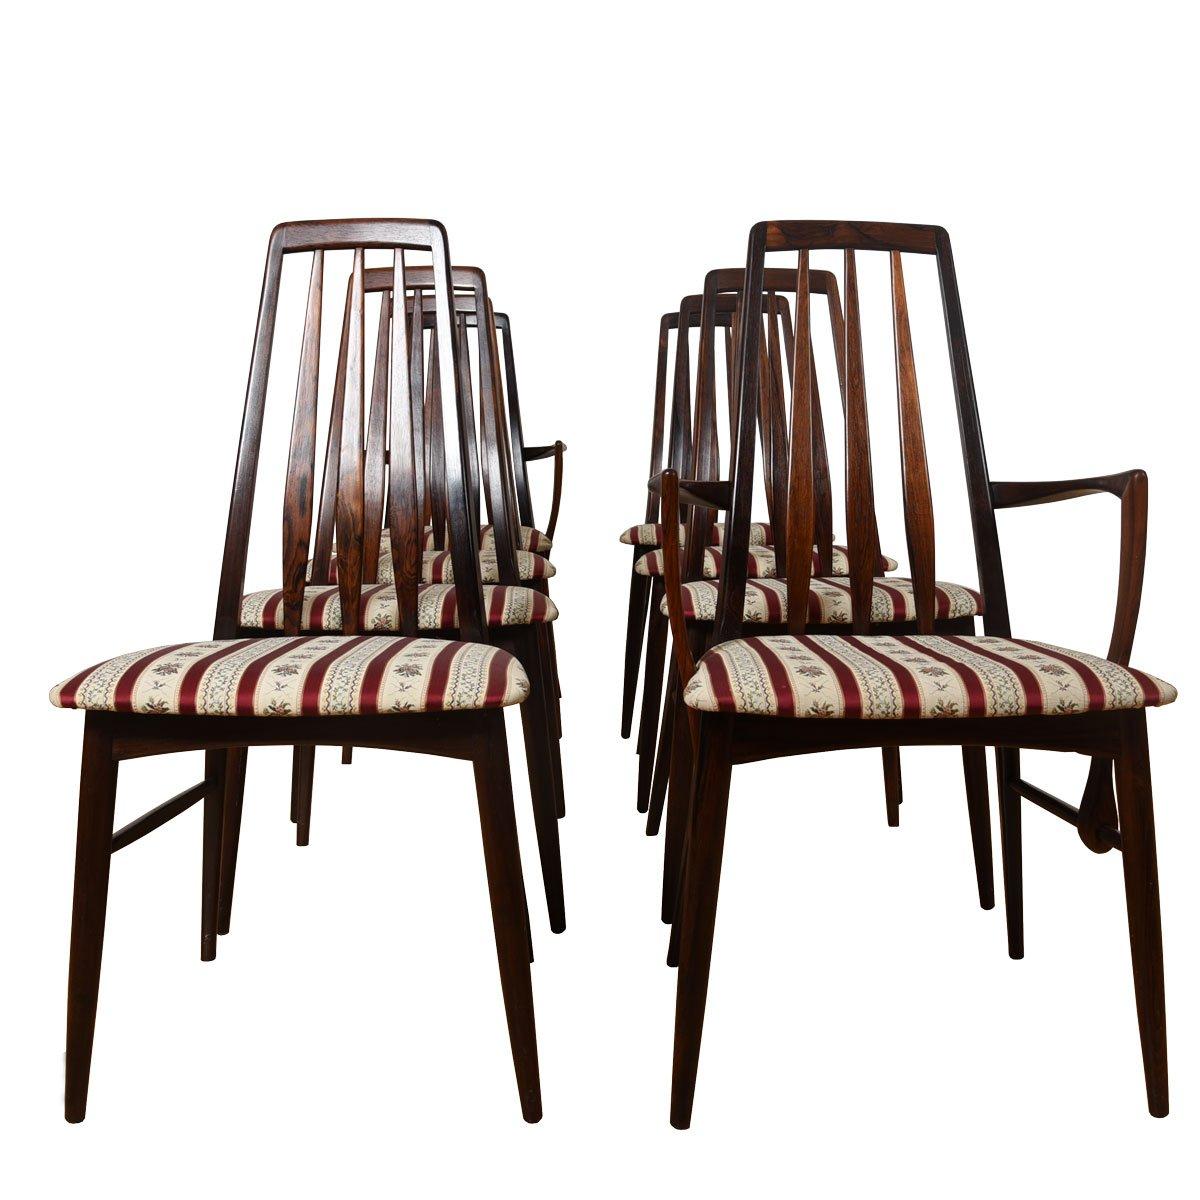 Set of 8 Koefoeds Hornslet Danish Rosewood Dining Chairs